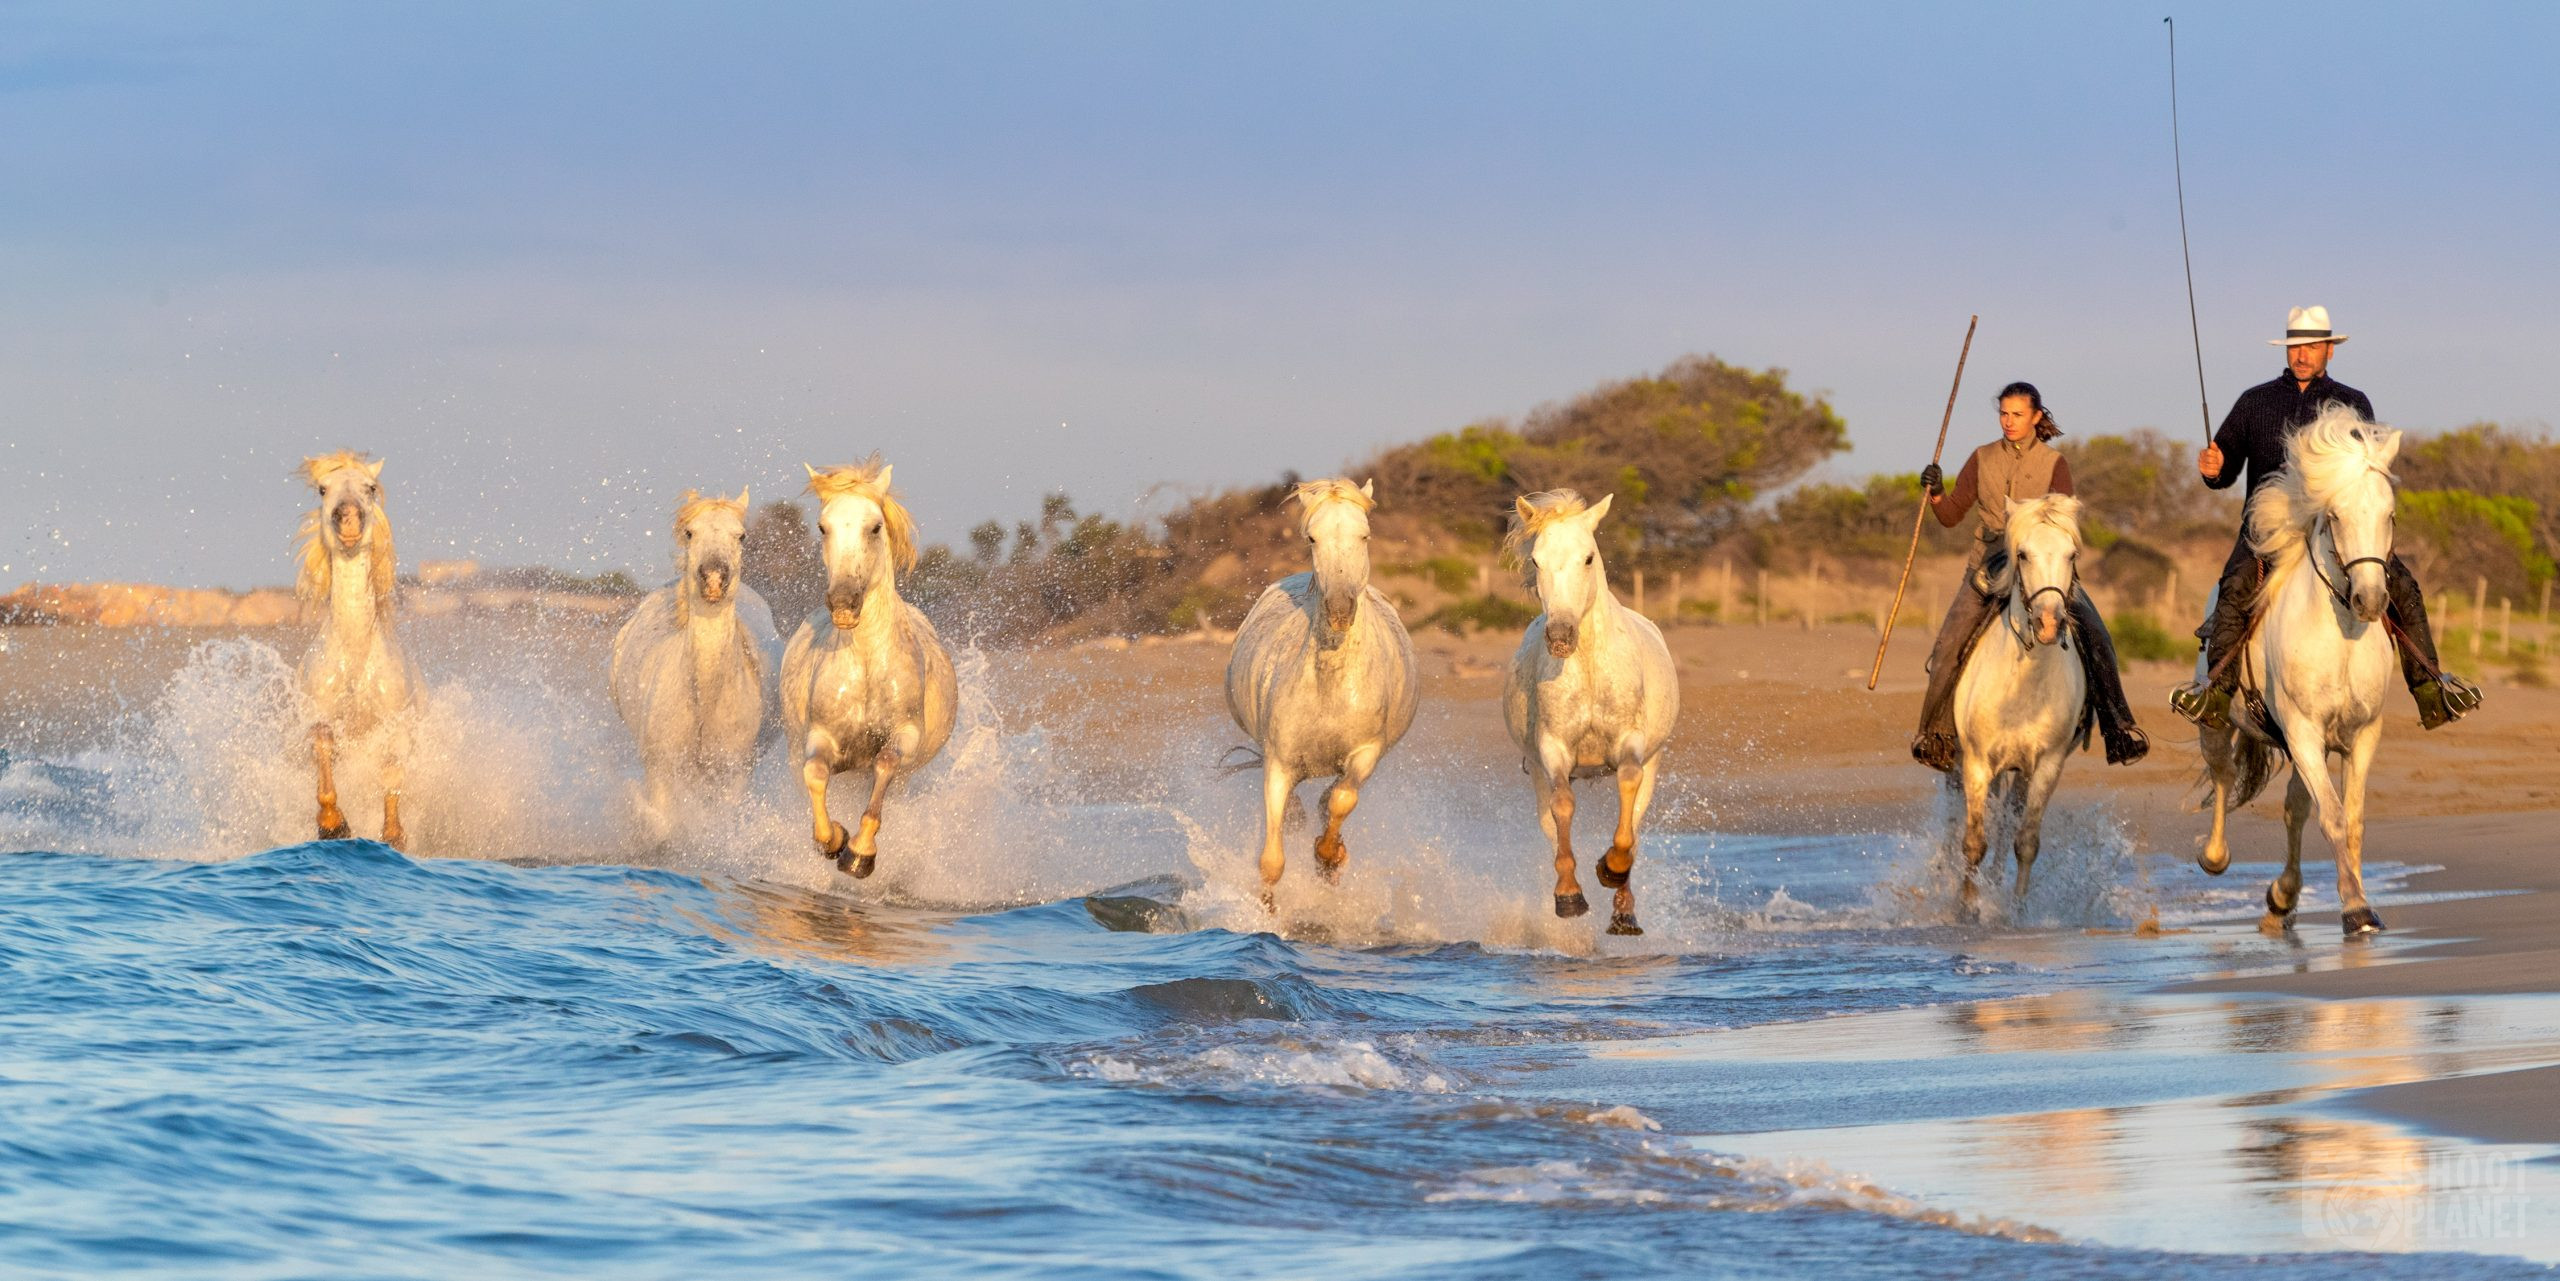 Guardians and horses on a Camargue beach, France